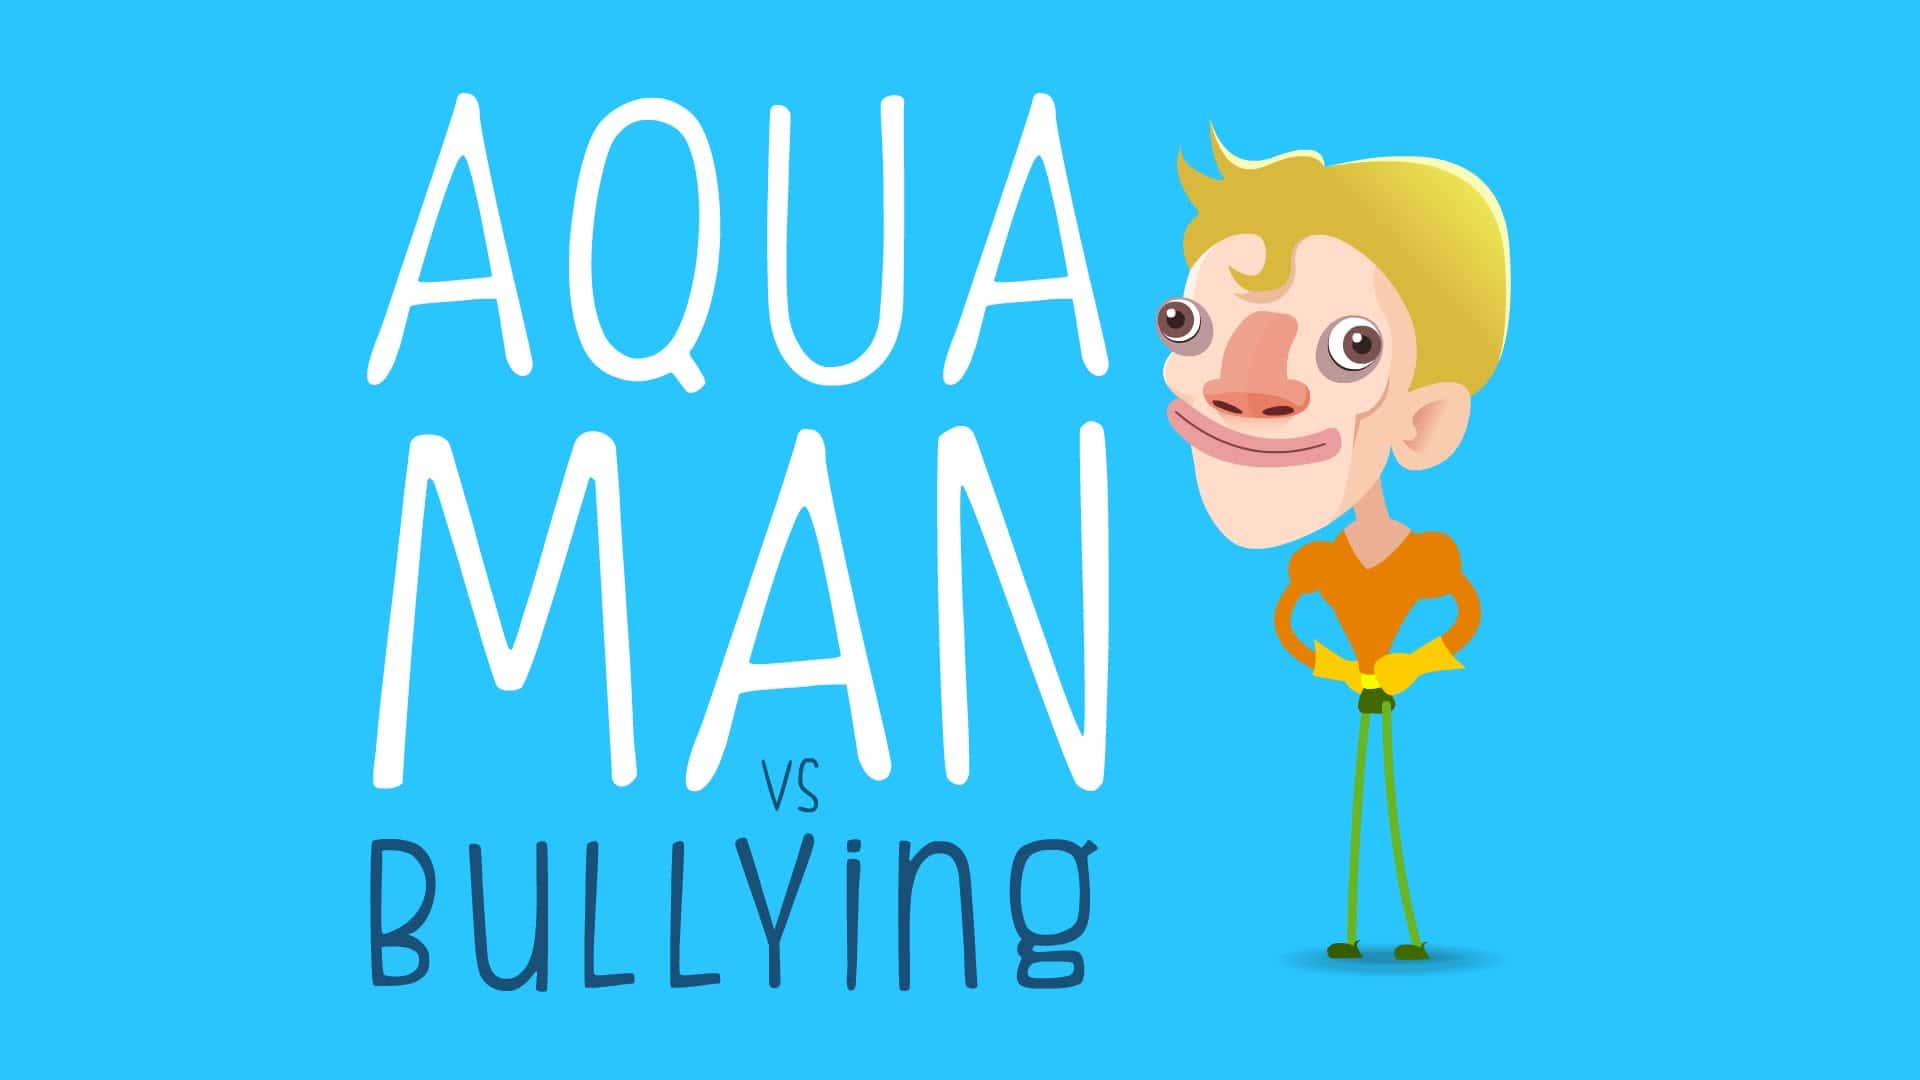 Aquaman contra o Bullying 6